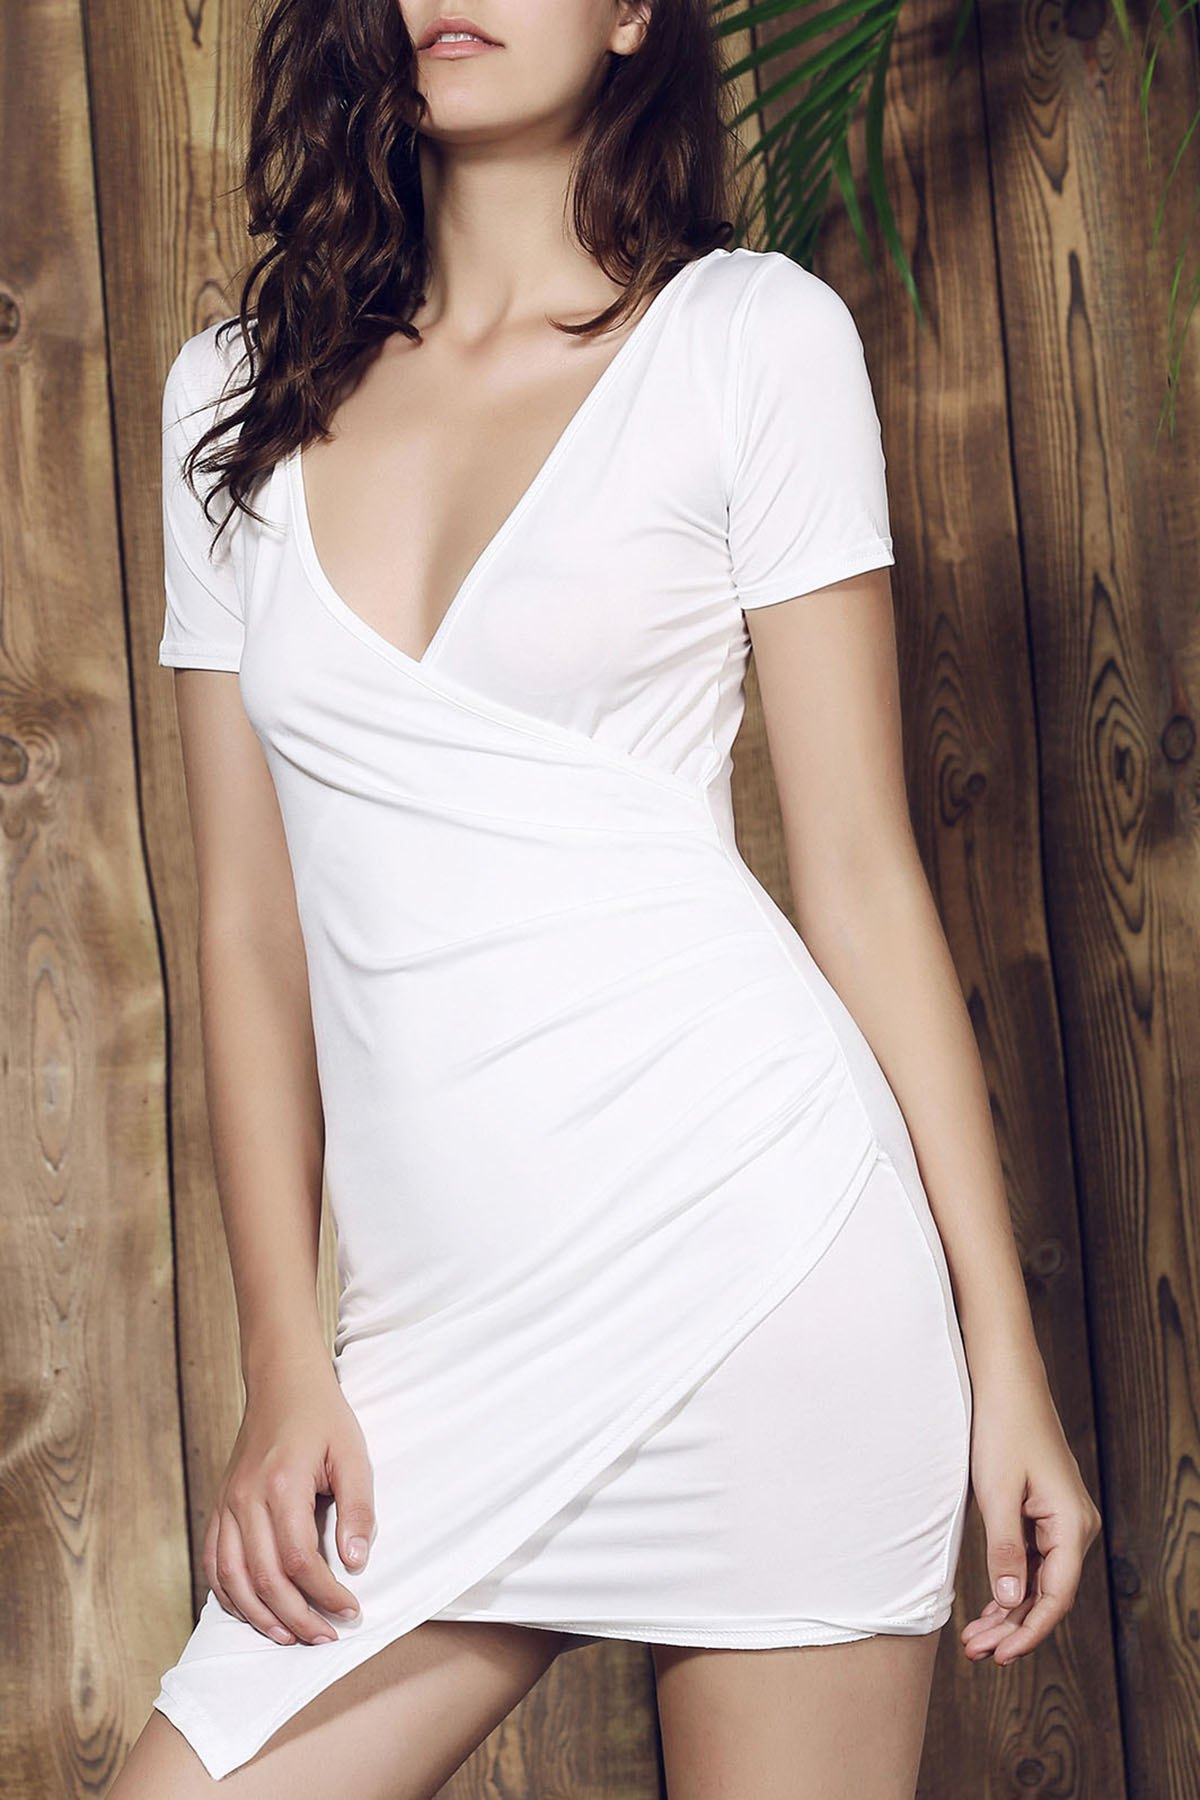 Plunging Collar Short Sleeve Solid Color Bodycon Dress - WHITE M